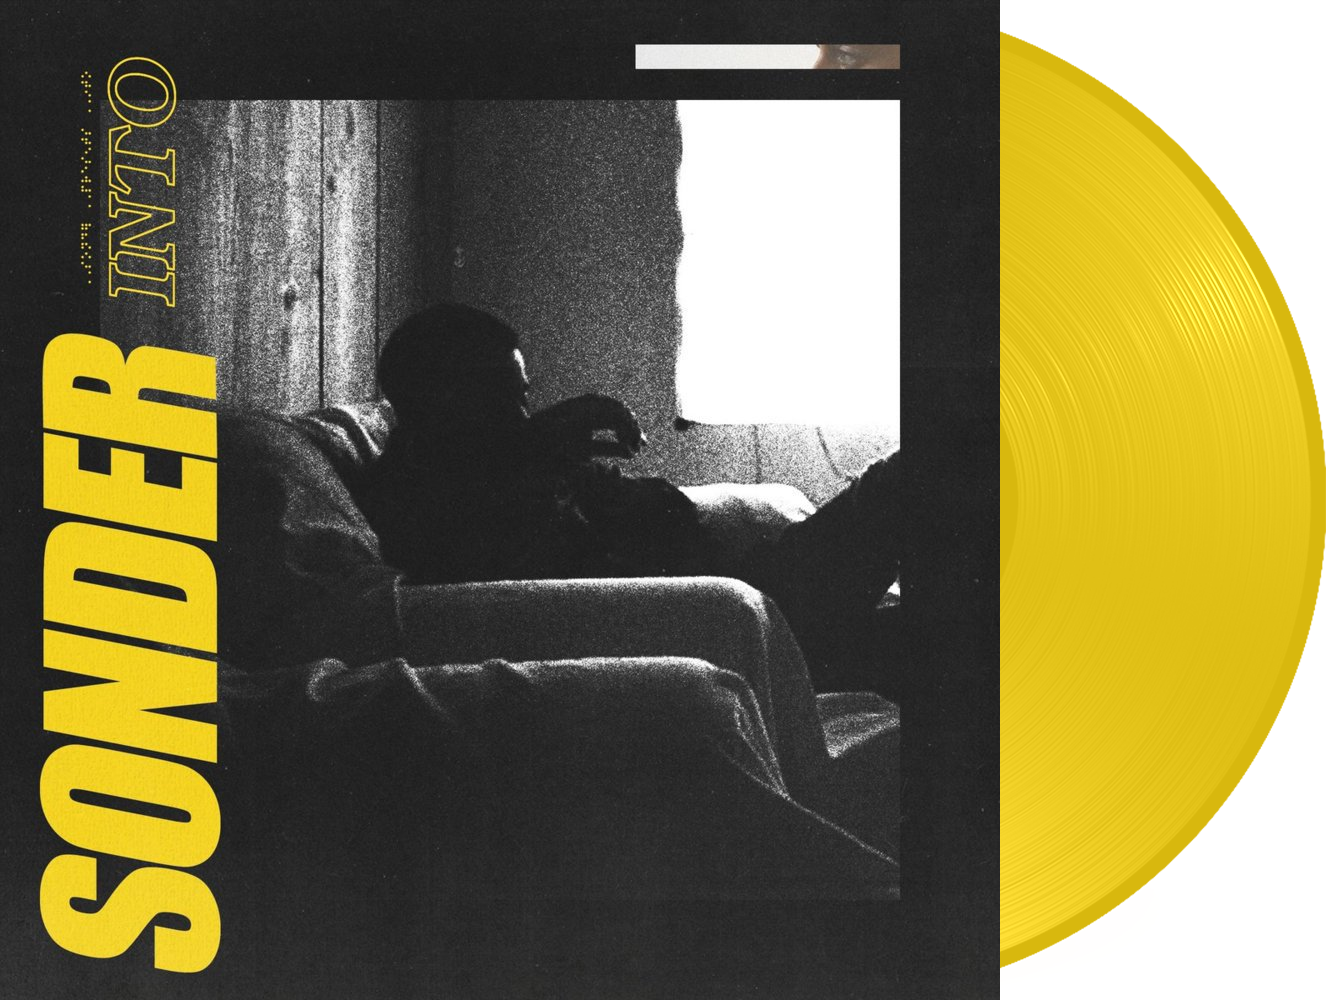 Sonder - Into is the collaborative effort of producers Atu And Dpat, along with singer Brent Faiyaz. This first pressing on yellow vinyl was limited to only 500 copies exclusively via record subscription platform VNYL.